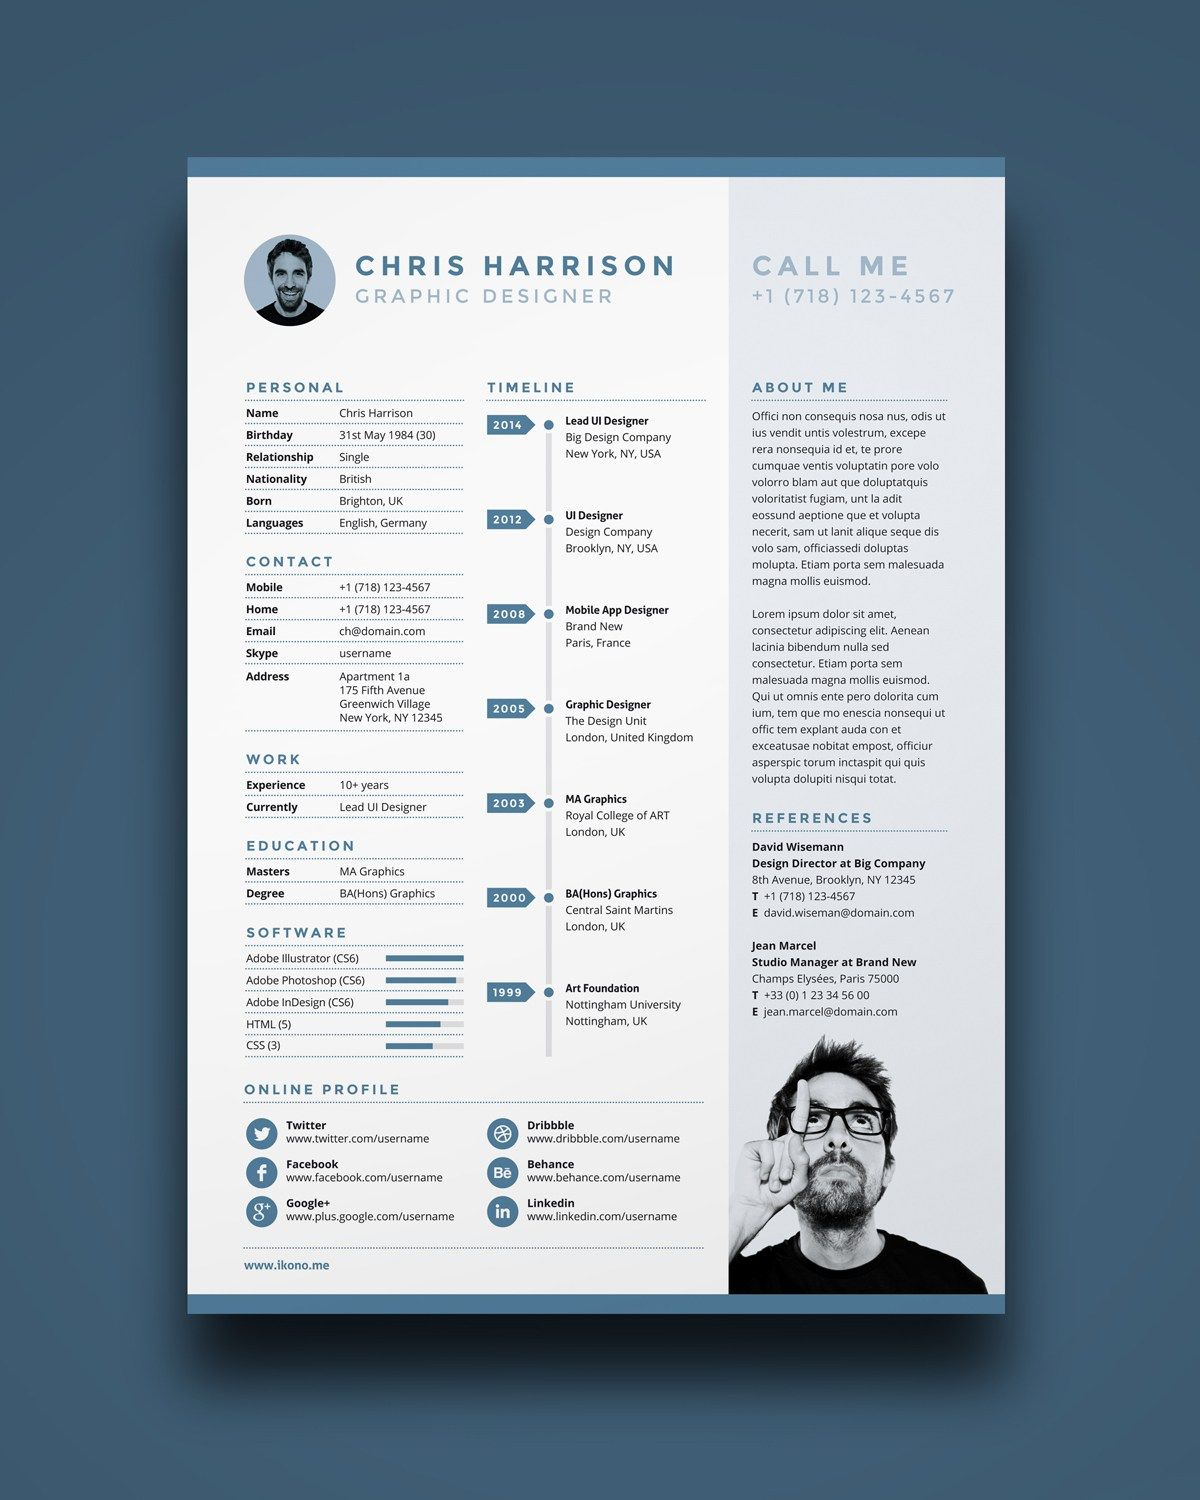 Free Resume Is A One Page Resume Template You Can Download For FREE - One page resume template free